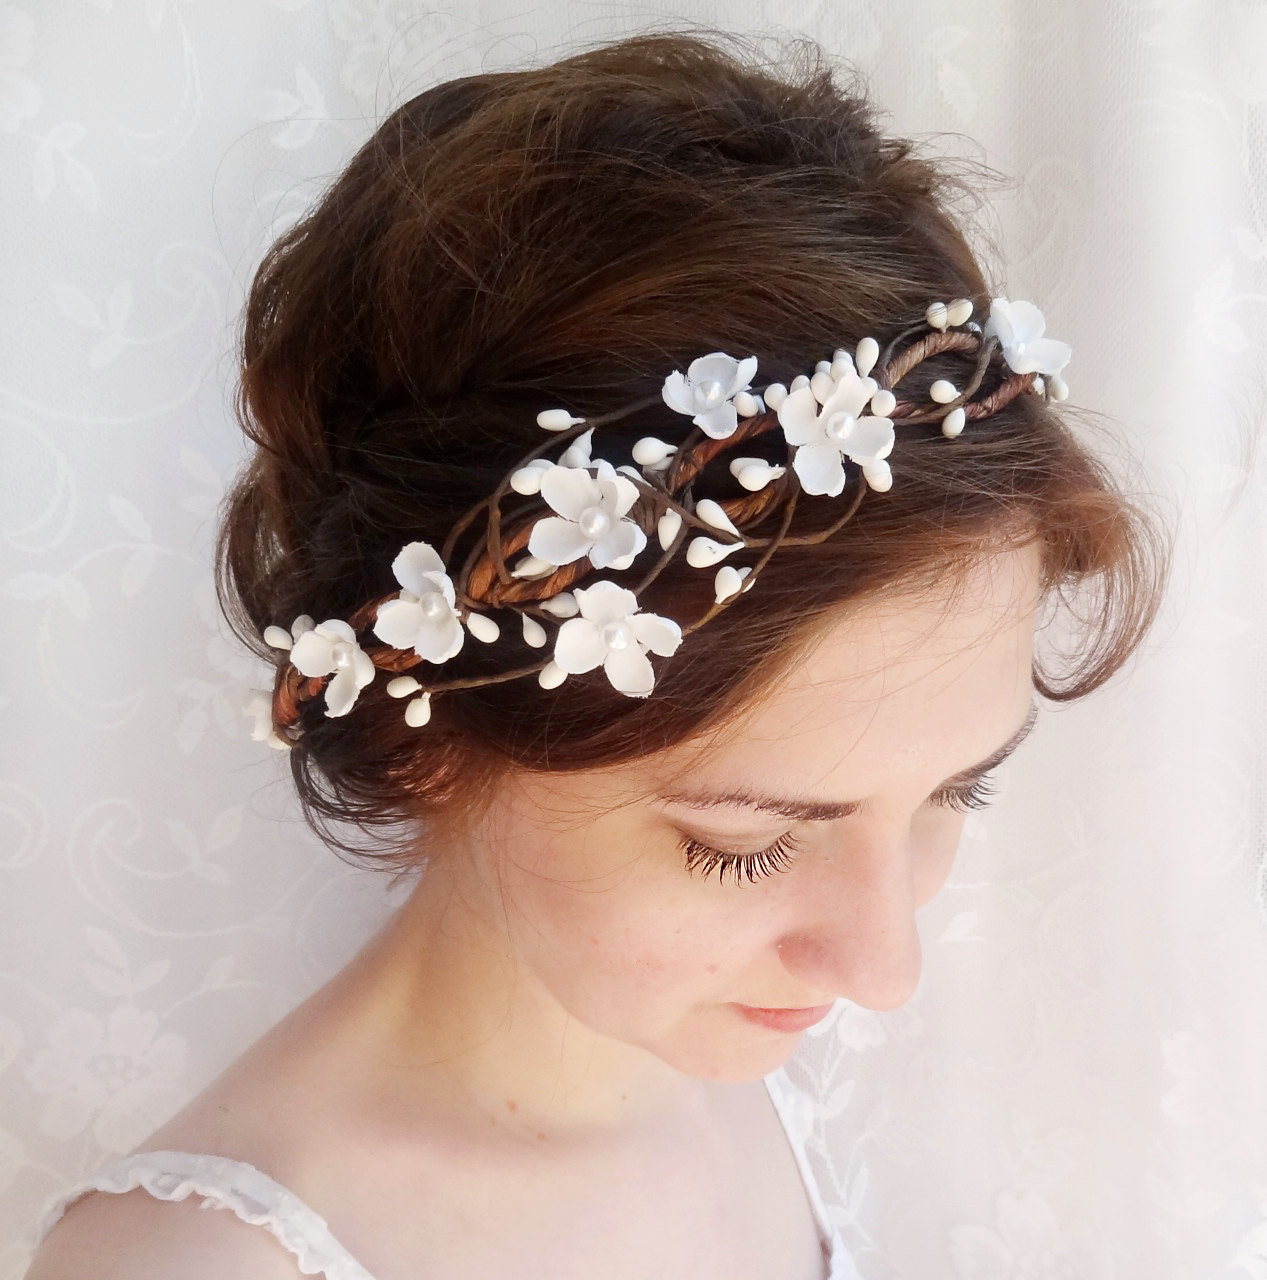 Bridal hair accessories wedding flower headpiece white flower crown circlet whimsy rustic wedding flower crown ivory hair accessory bridal hair accessories wedding flower headpiece white flower crown circlet whimsy rustic wedding flower crown mightylinksf